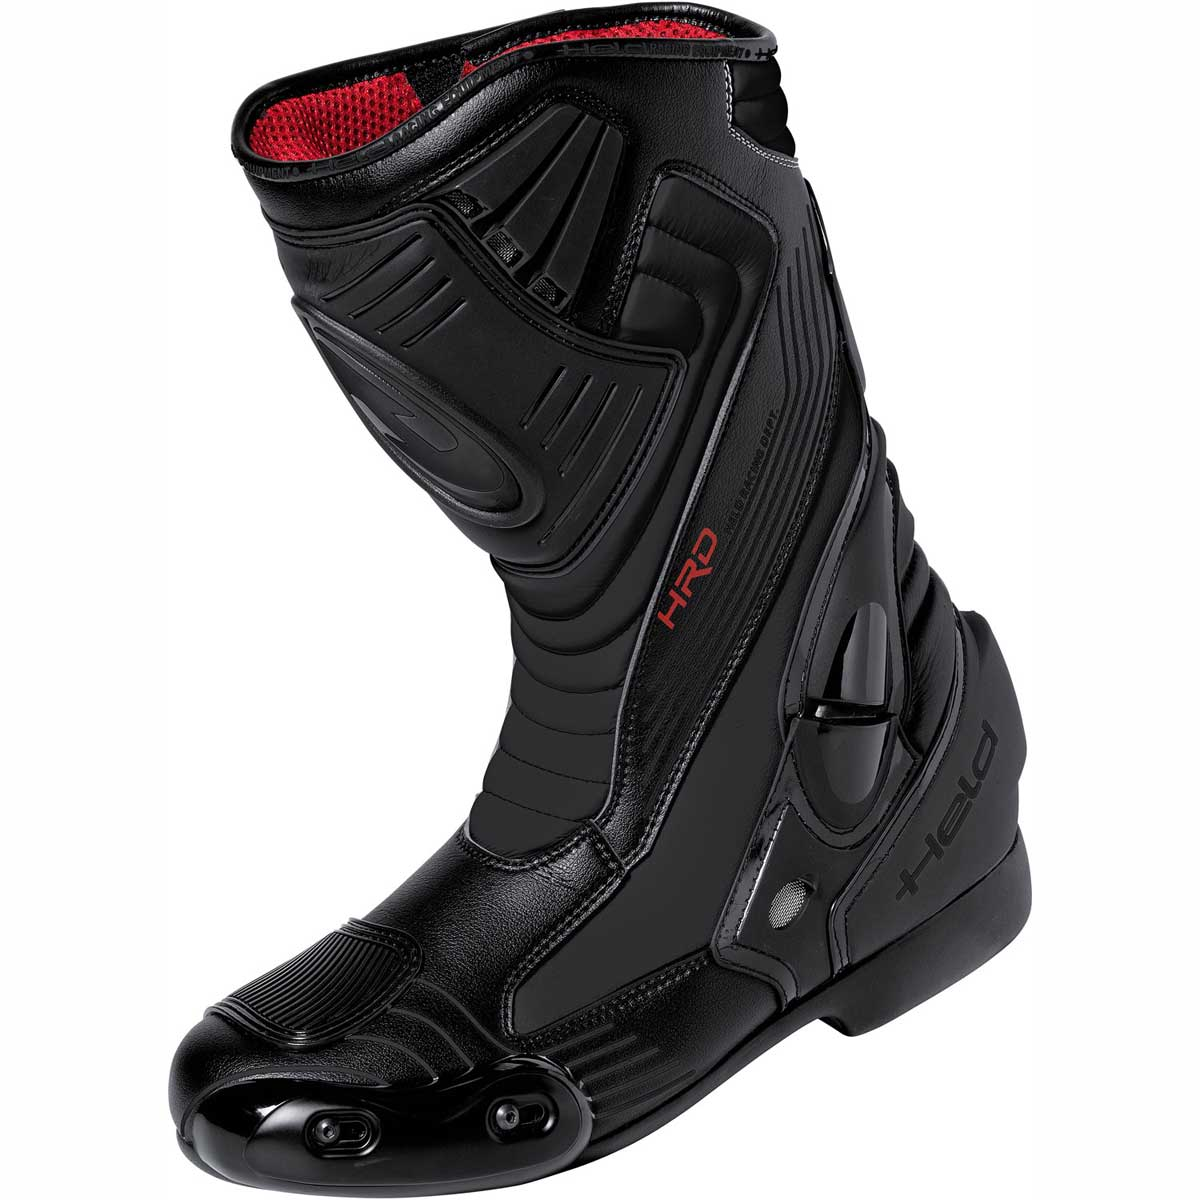 Held Epco boots